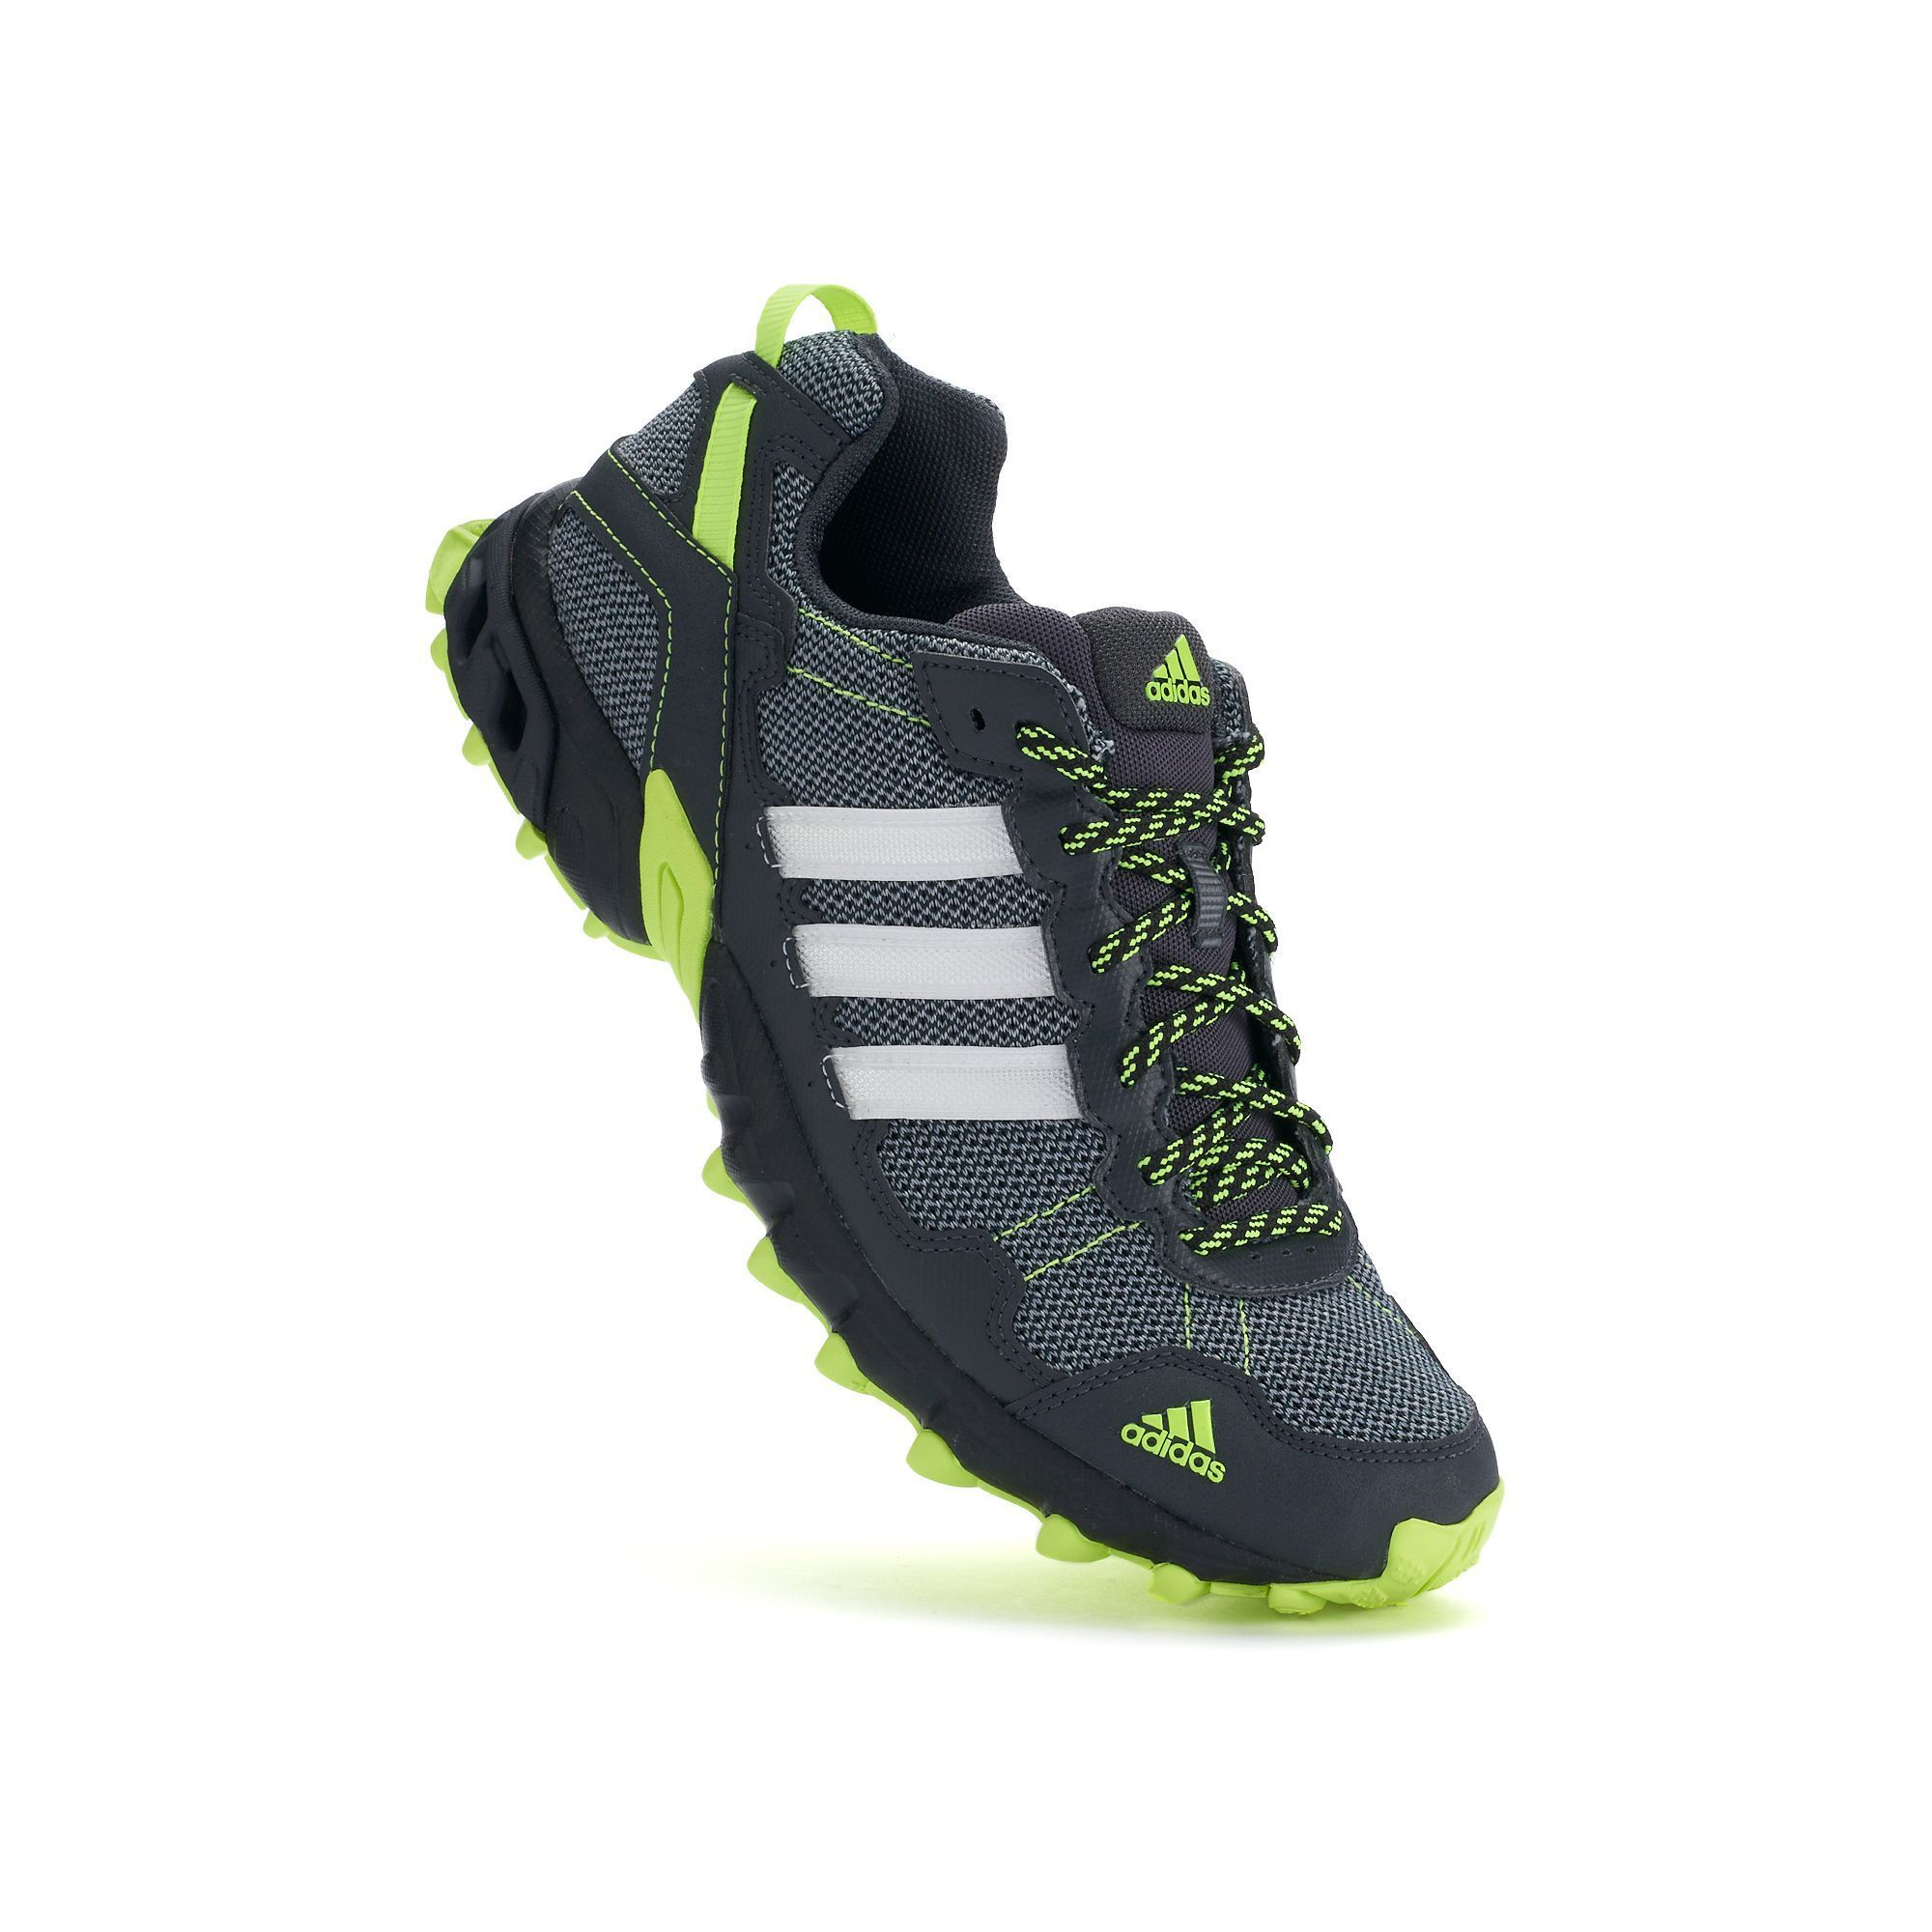 6a324353af3d9d adidas Rockadia Trail Men s Trail Running Shoes in 2019